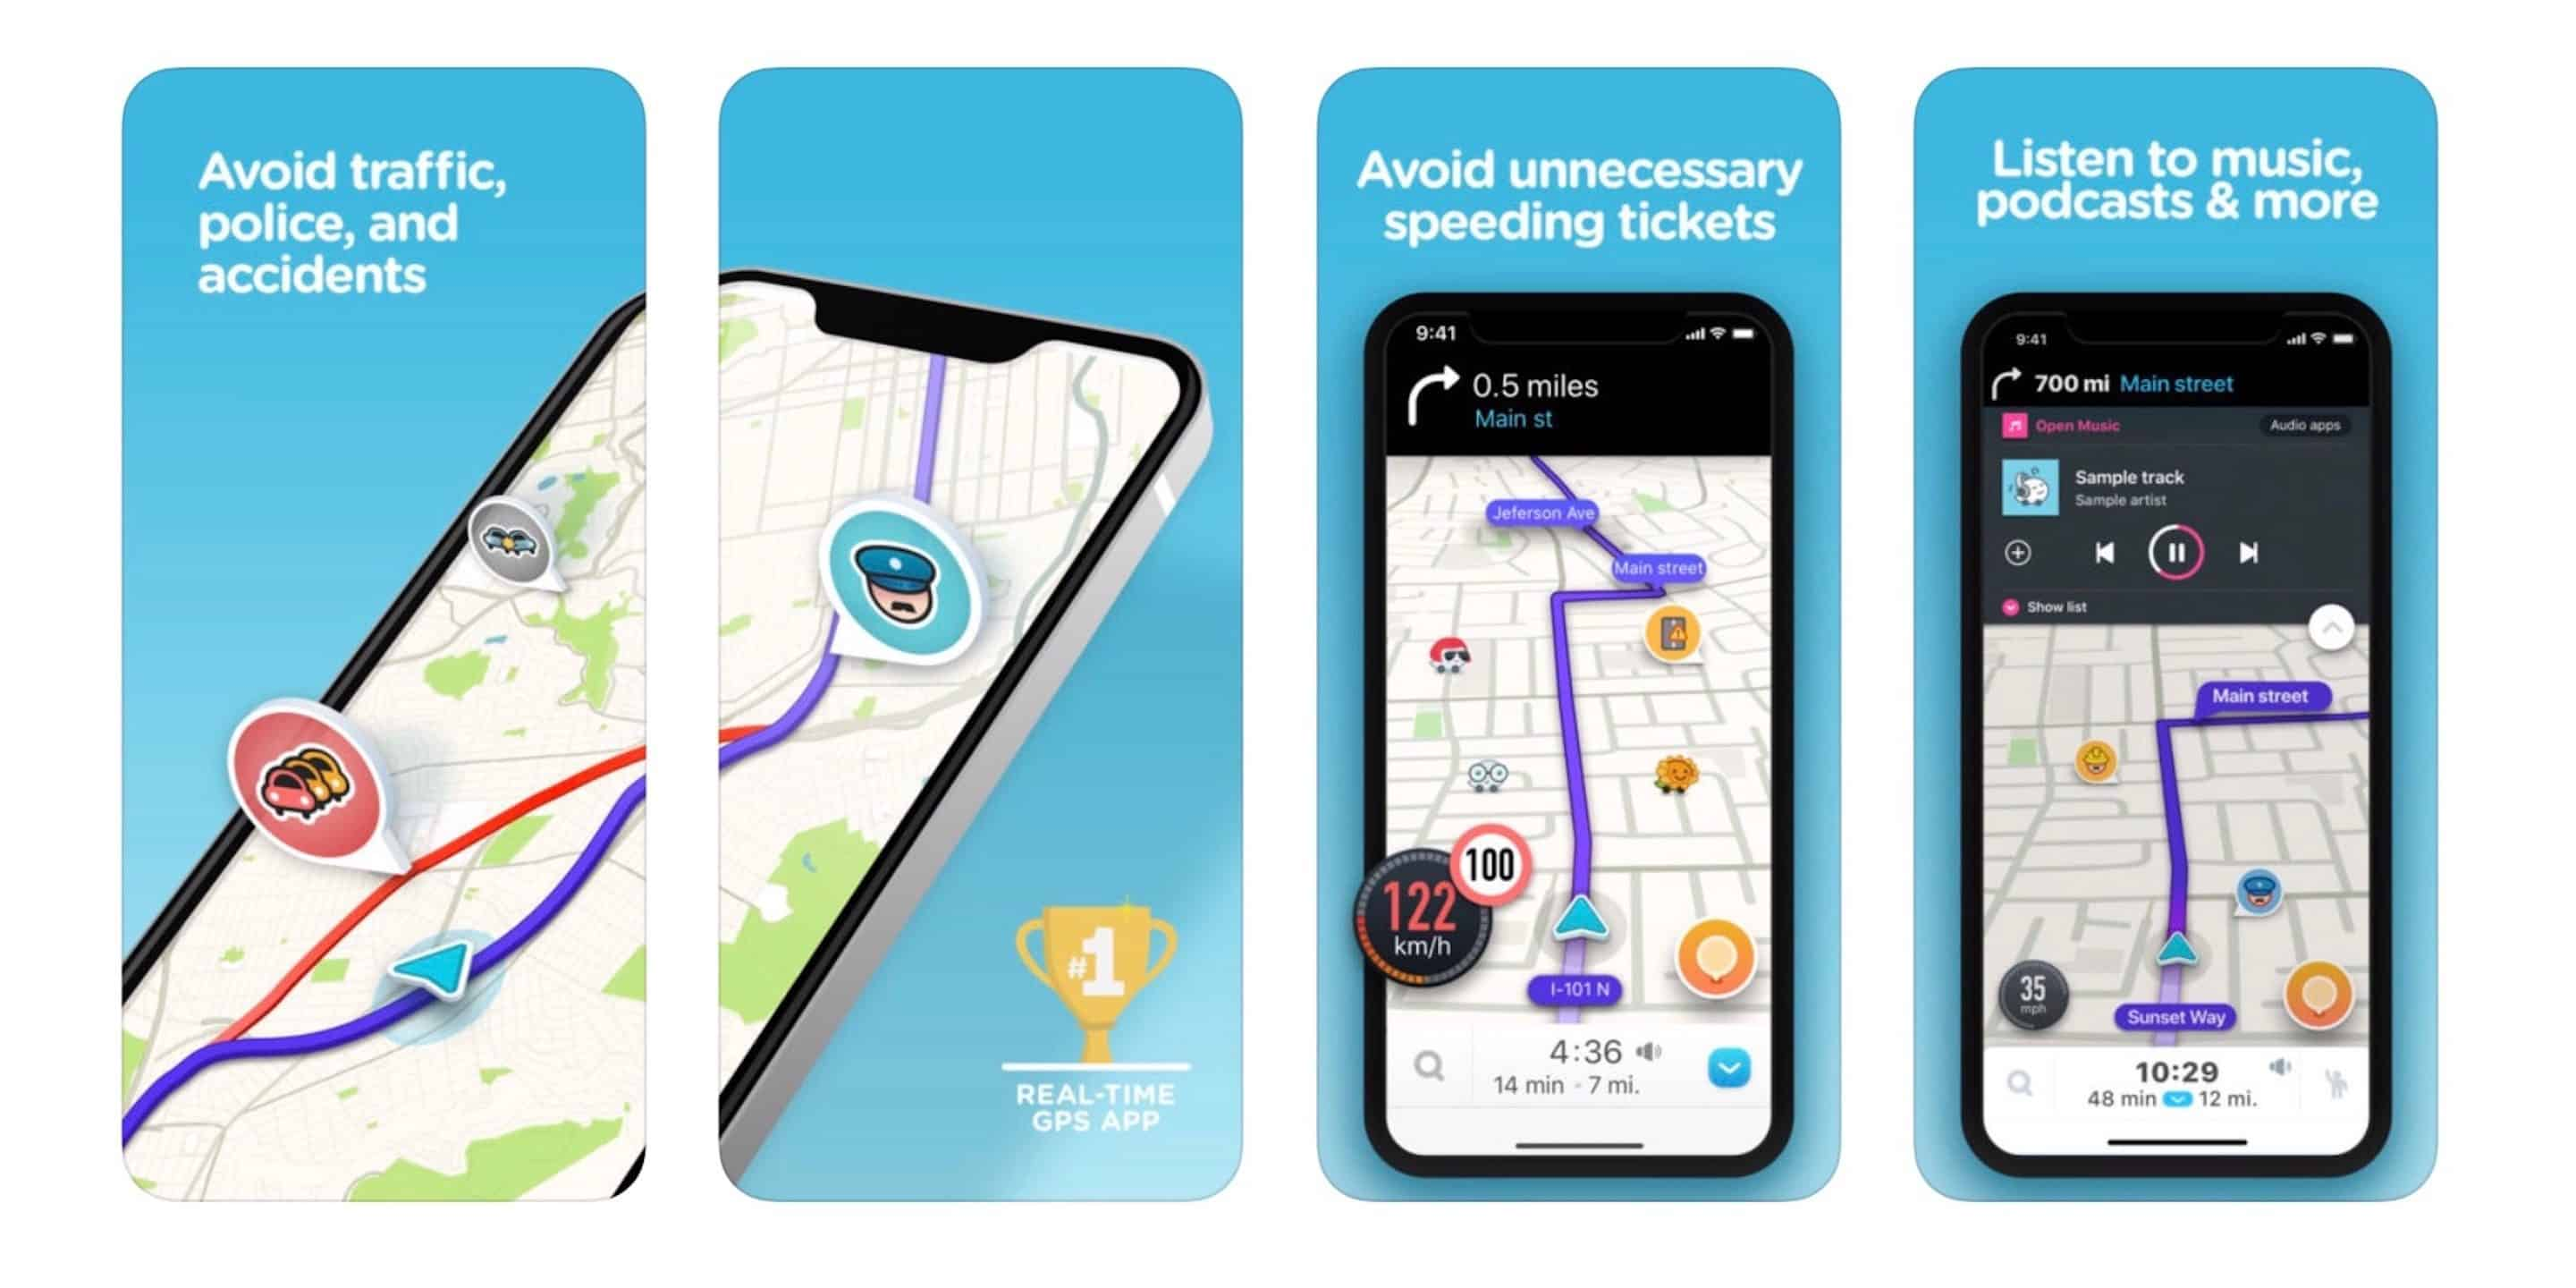 The Latest version of Waze Maps supports Siri Shortcuts